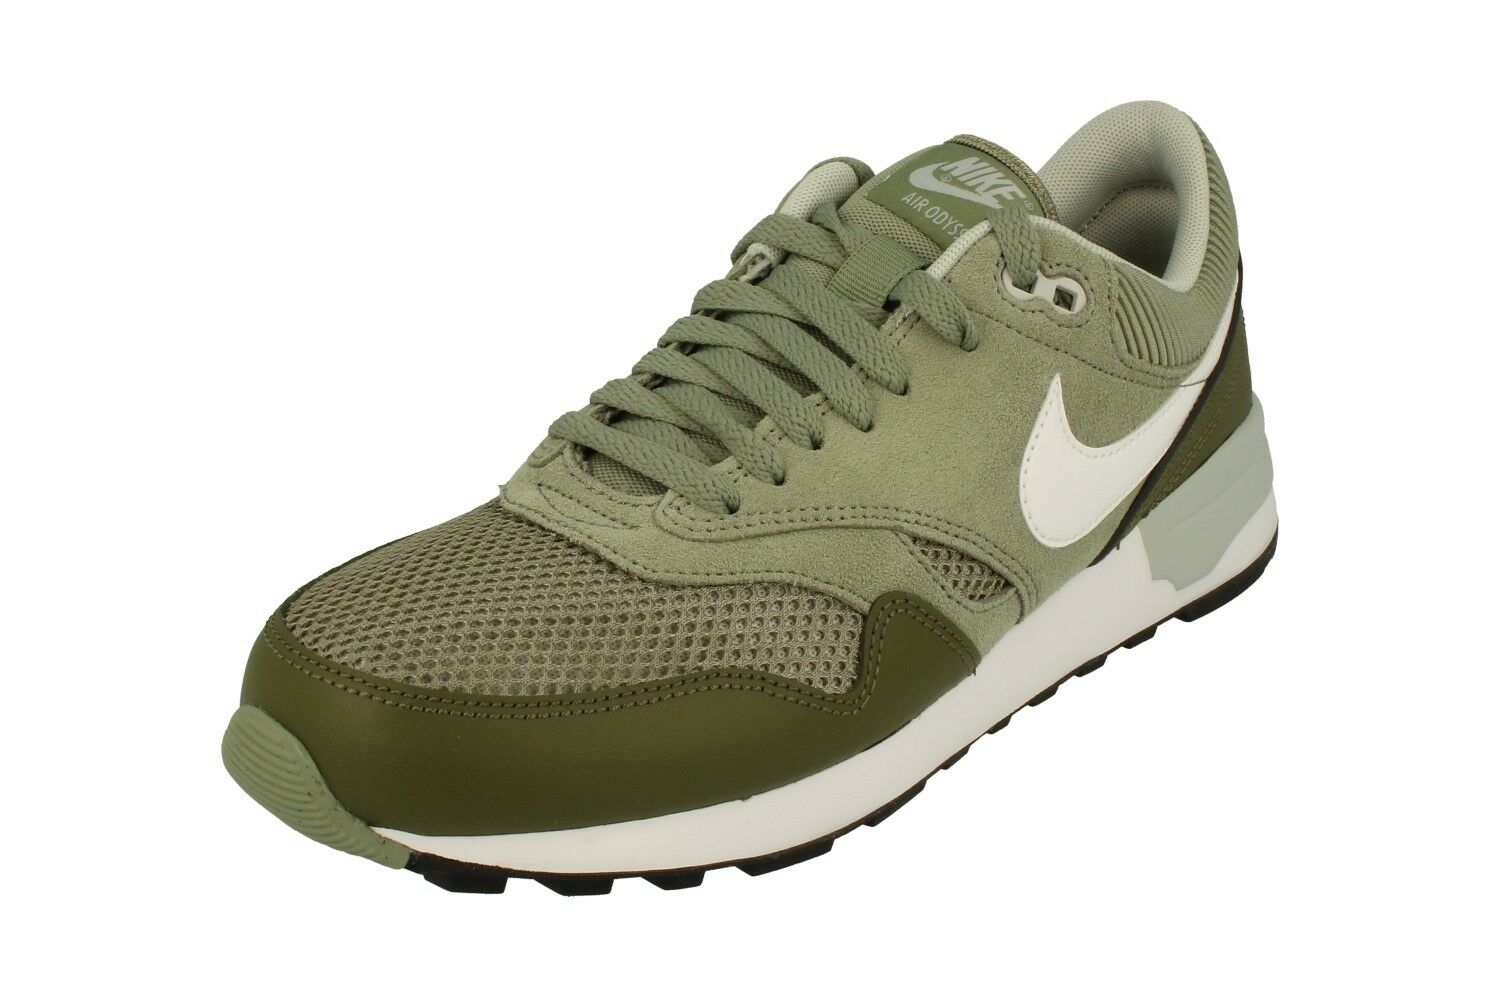 Nike Air Odyssey Mens Trainers 652989 Sneakers shoes 301